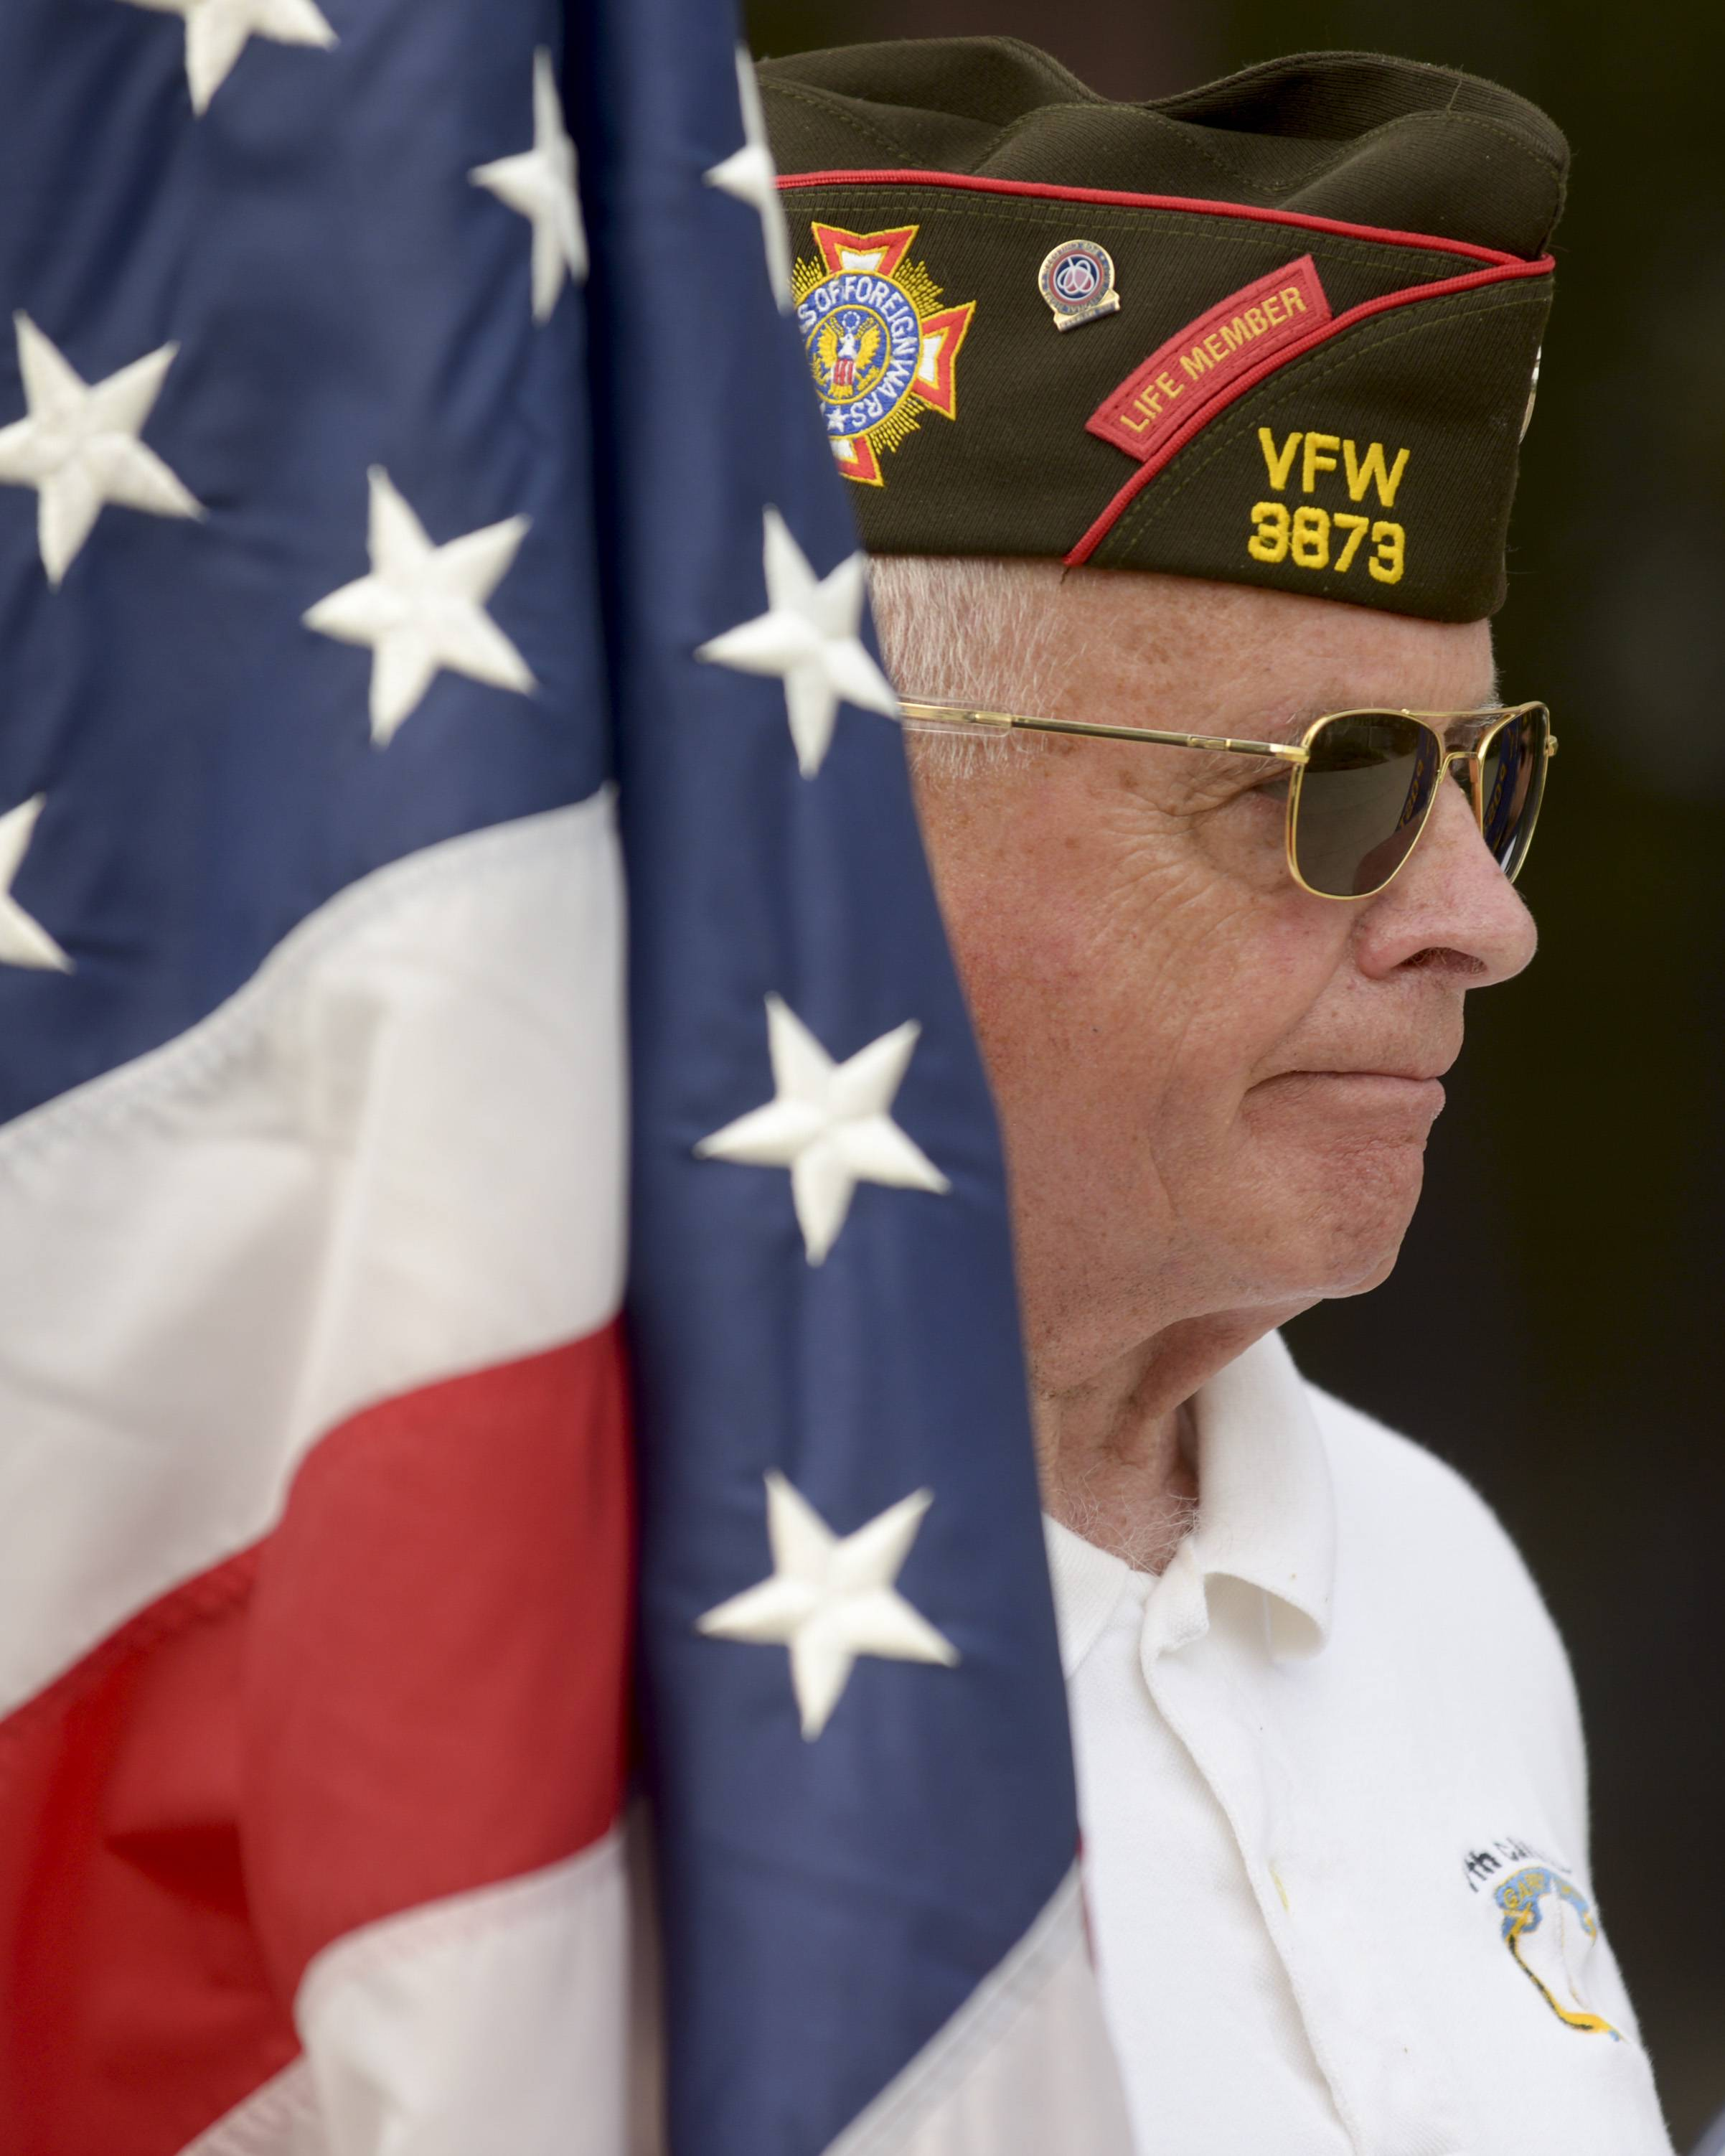 Vietnam Army veteran and VFW 3873 member Mike McGrath carries the American Flag during Naperville's Memorial Day service at the Cmdr. Dan Shanower/Sept. 11 memorial, Monday.